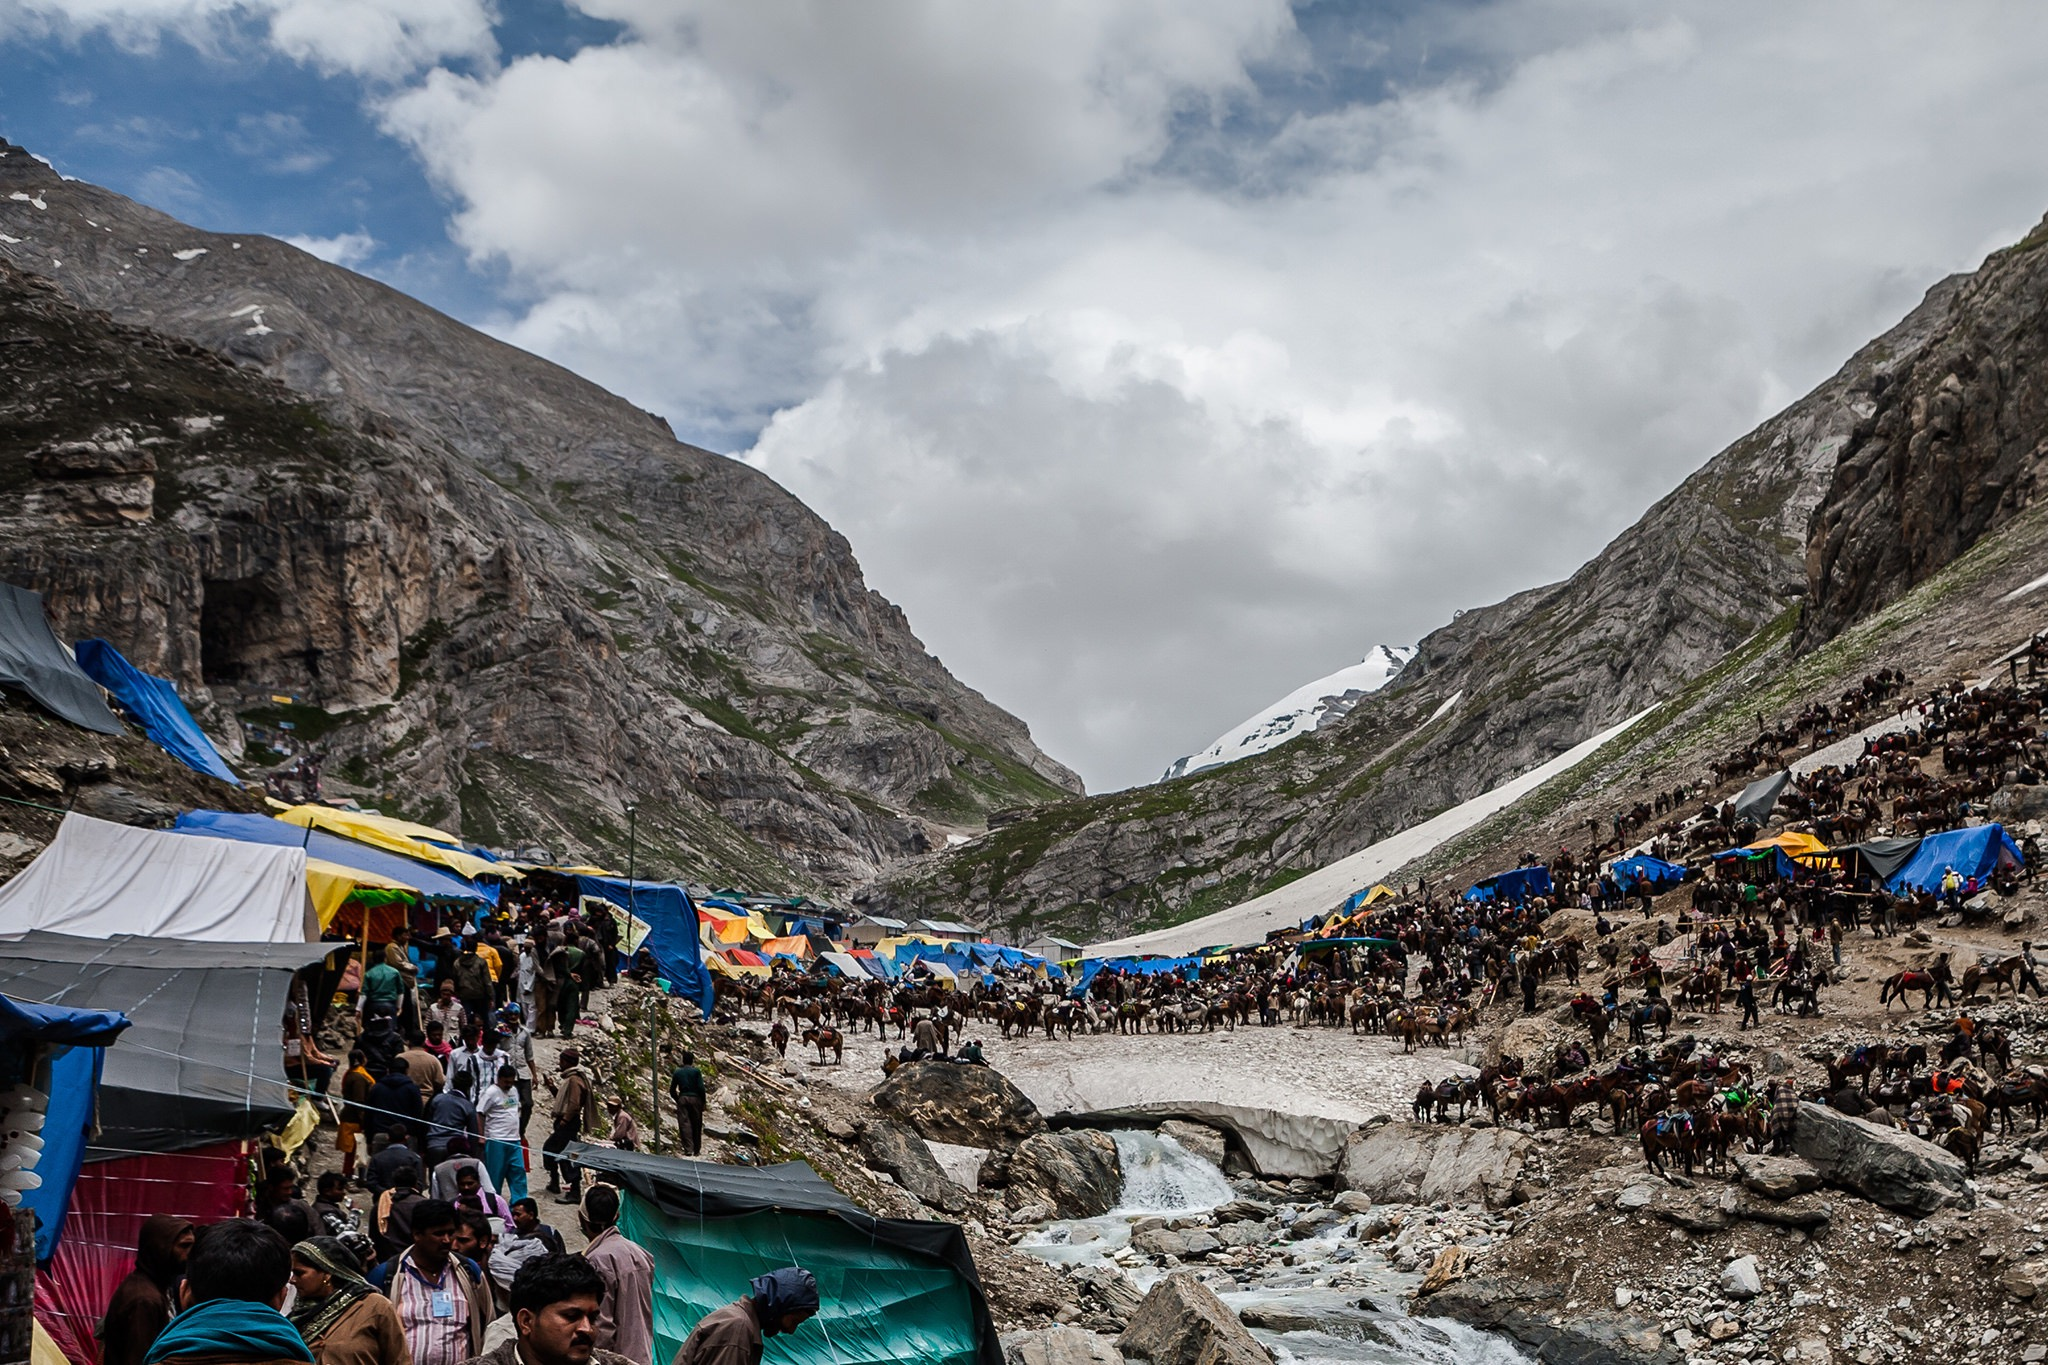 On the Amarnath Yatra, Faith and State Go Hand-in-Hand